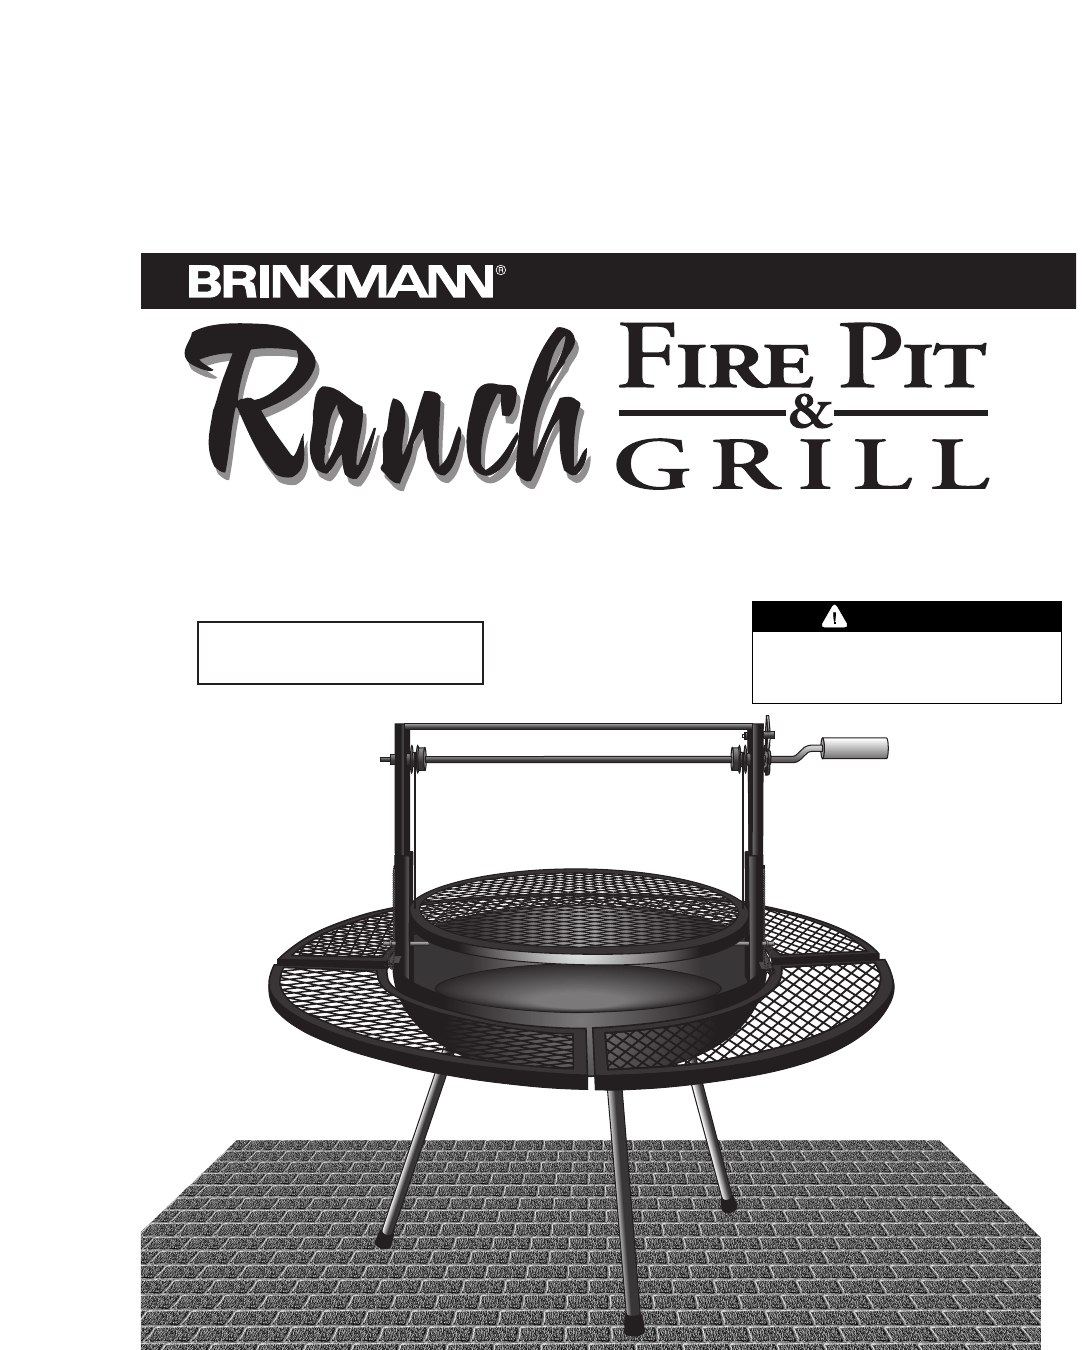 Brinkmann Fire Pit Fire Pit & Grill User Guide